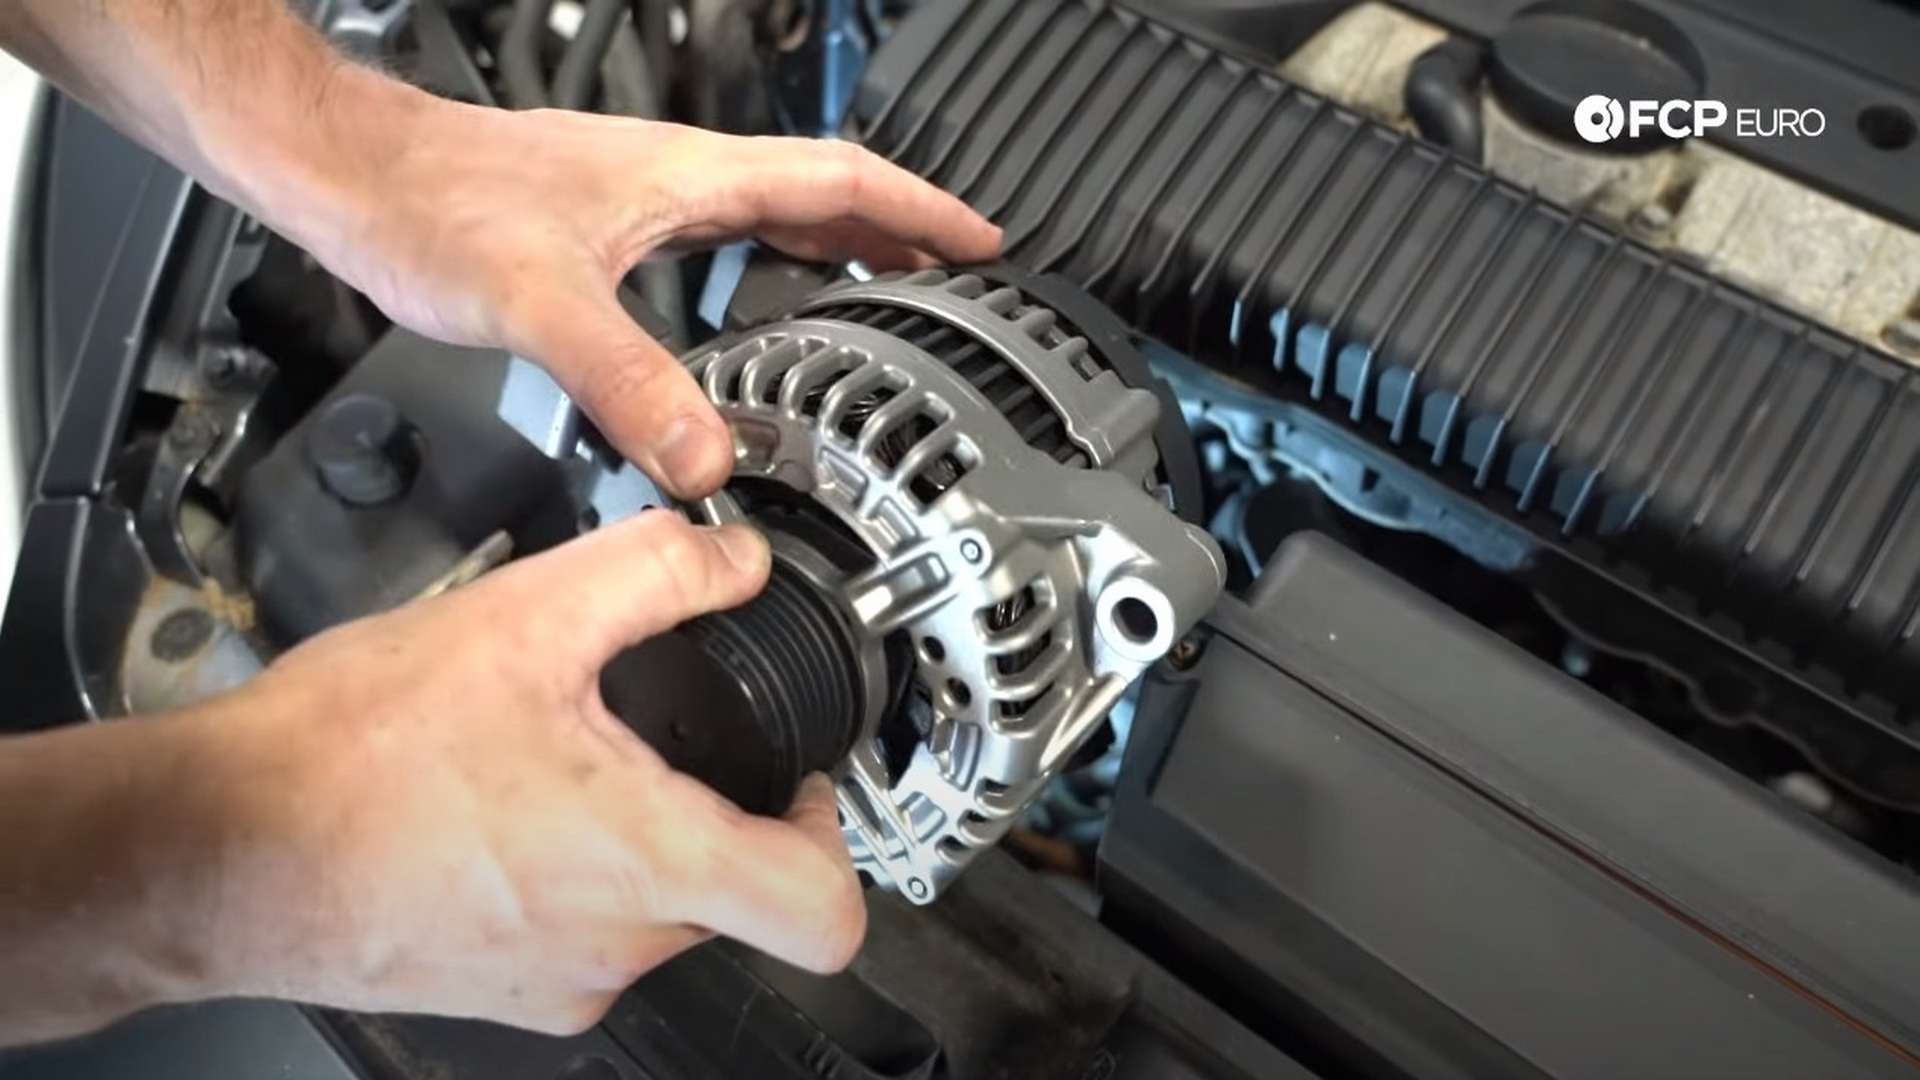 How To Replace The Alternator and Serpentine Belt On A Volvo C30 (Volvo P1)